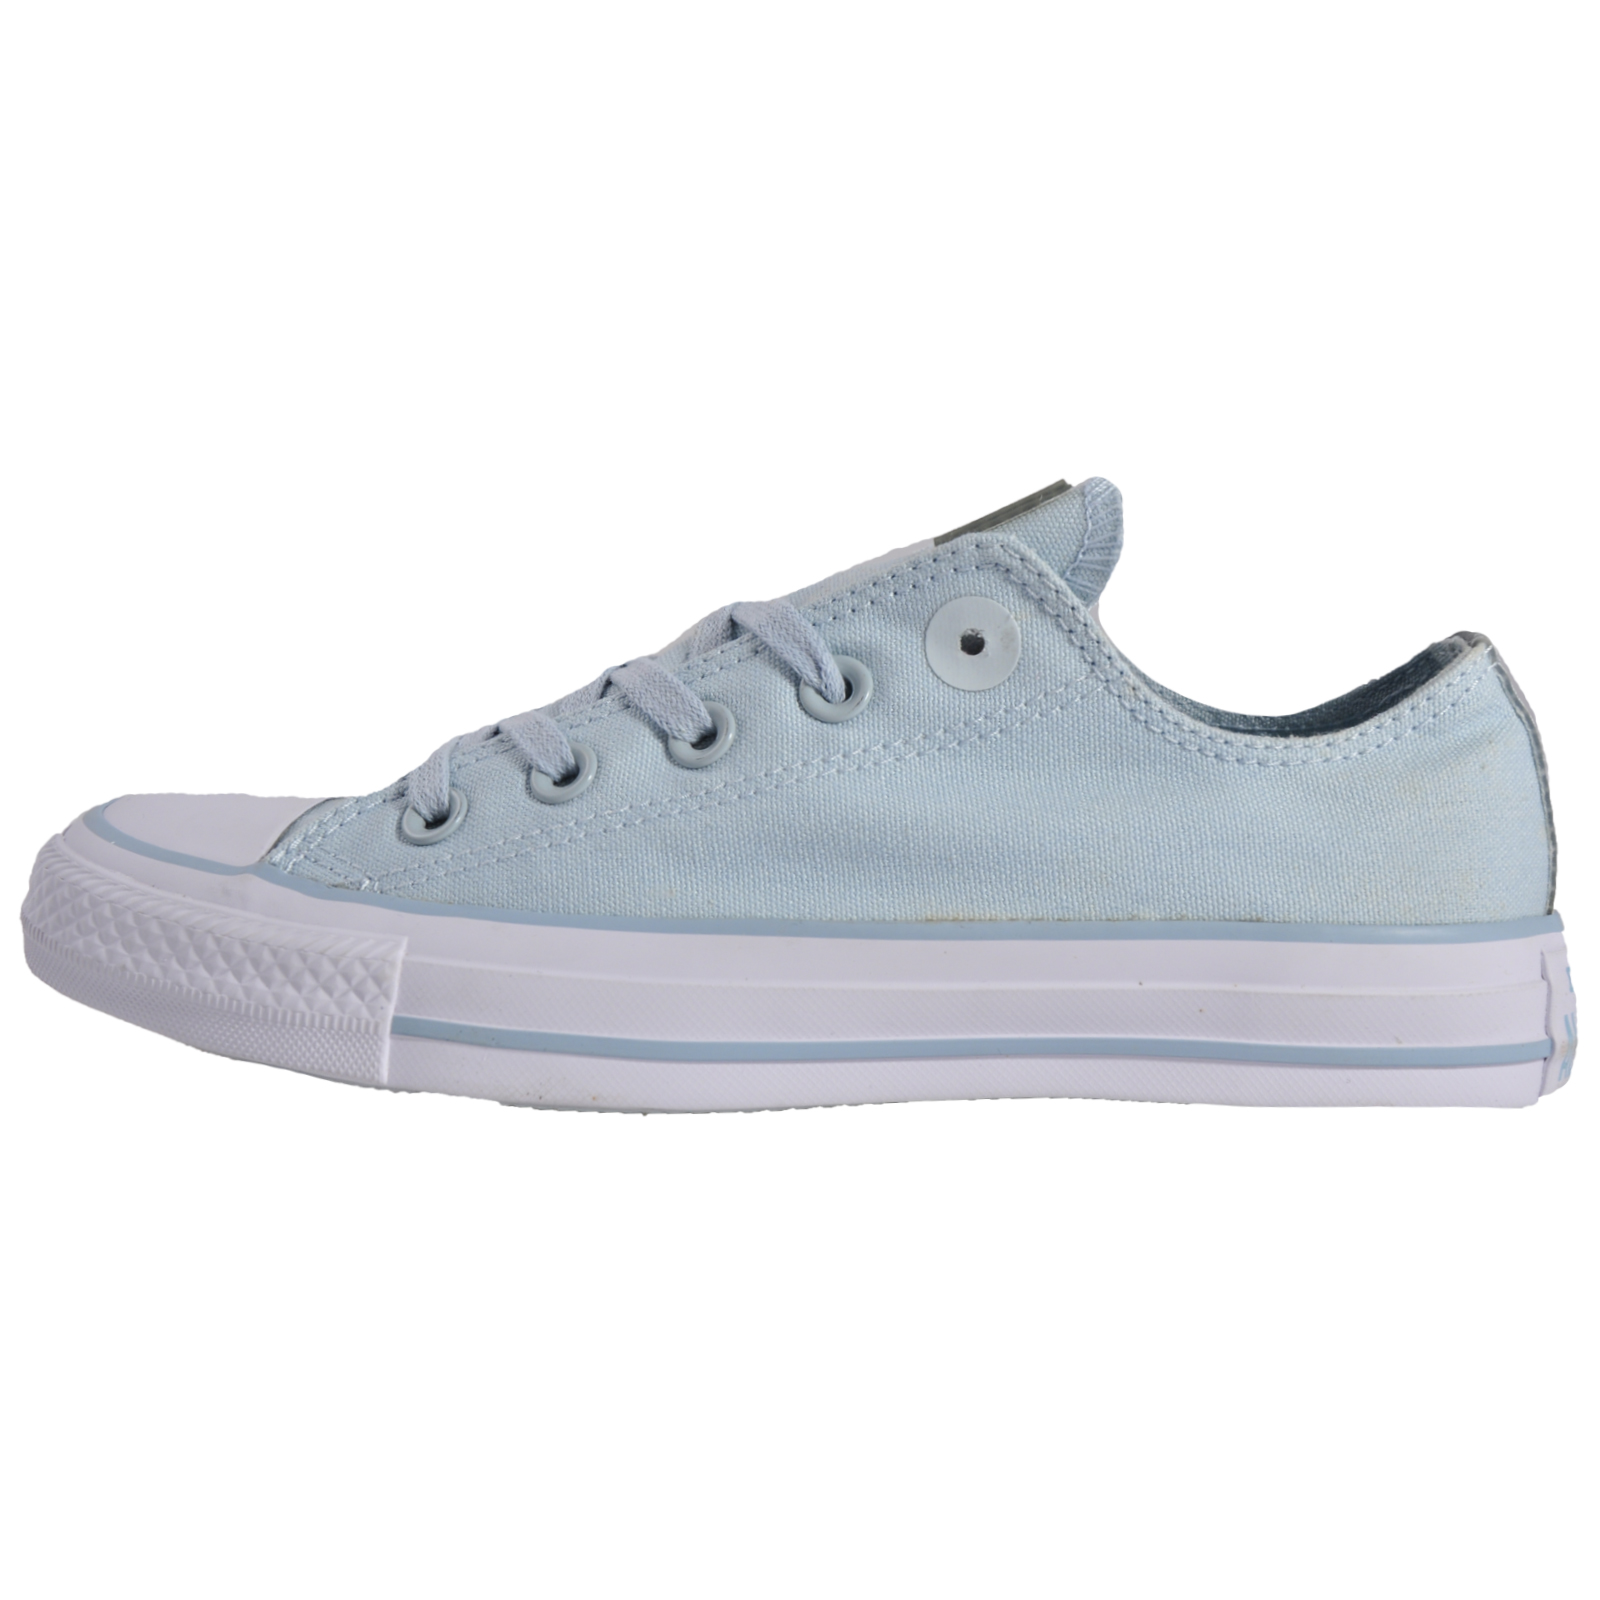 Details about Converse CT All Star OX Lo Women's Girls Casual Retro Fashion Plimsol Trainers